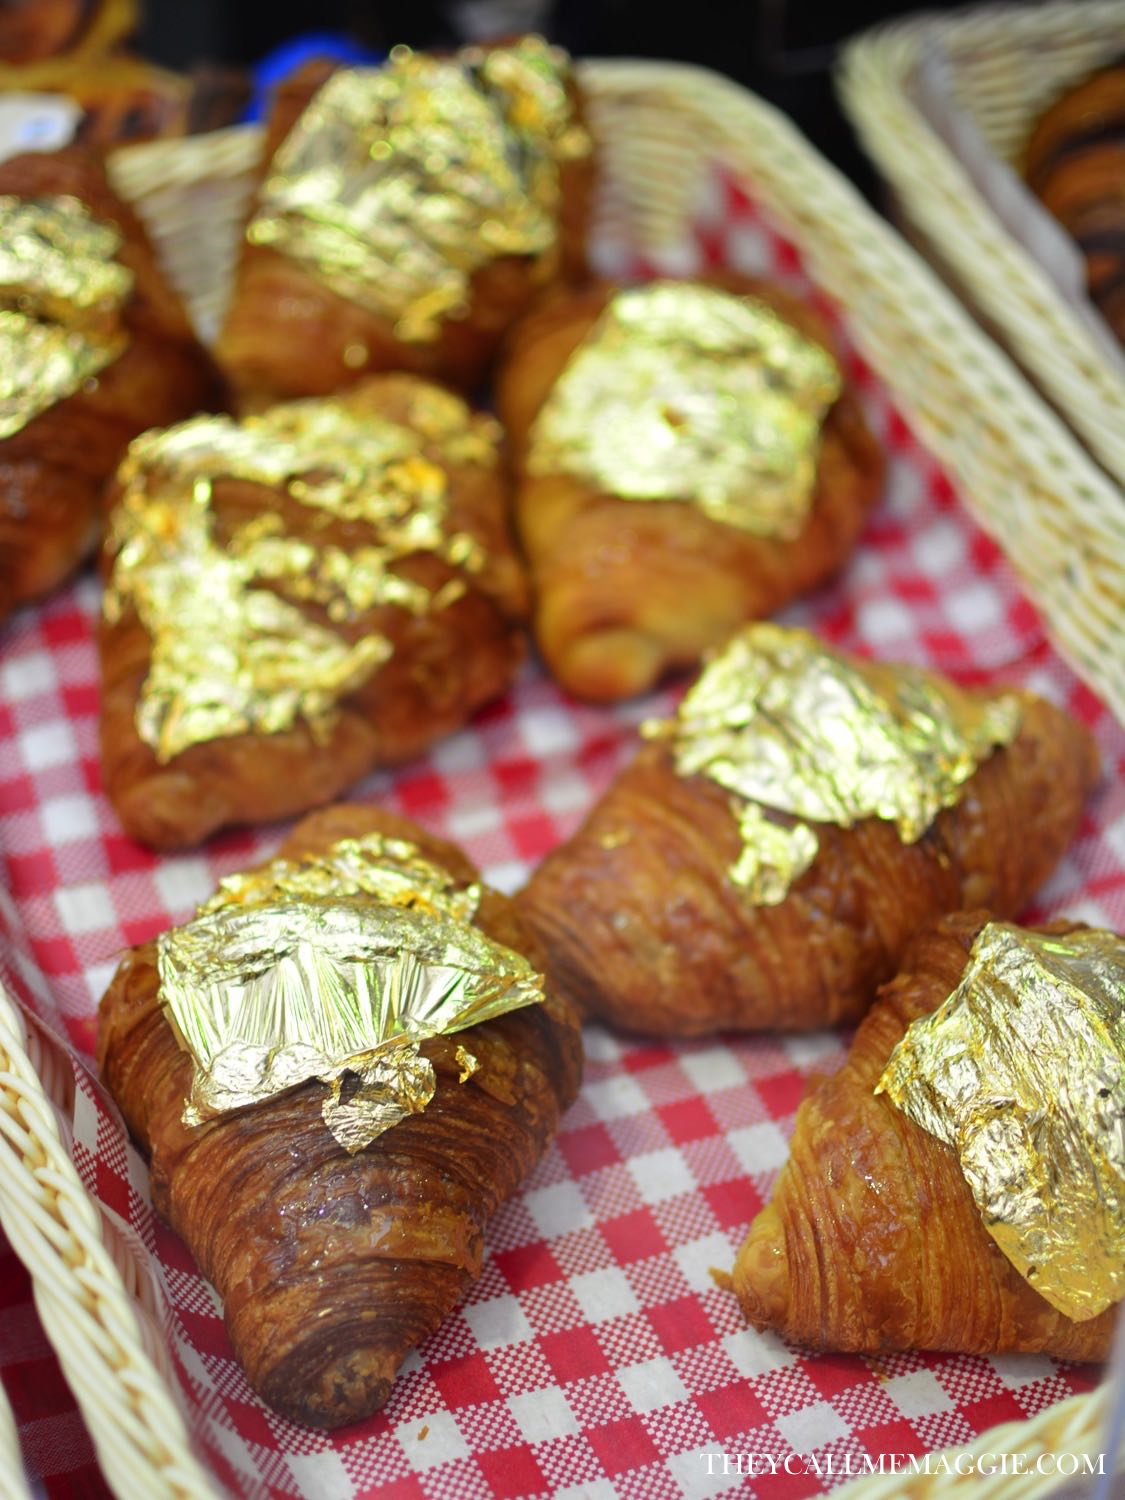 Croissants fit for a queen - these explosive sour lemon croissants, topped with a gold leaf, were created as a special Queen's Birthday edition.